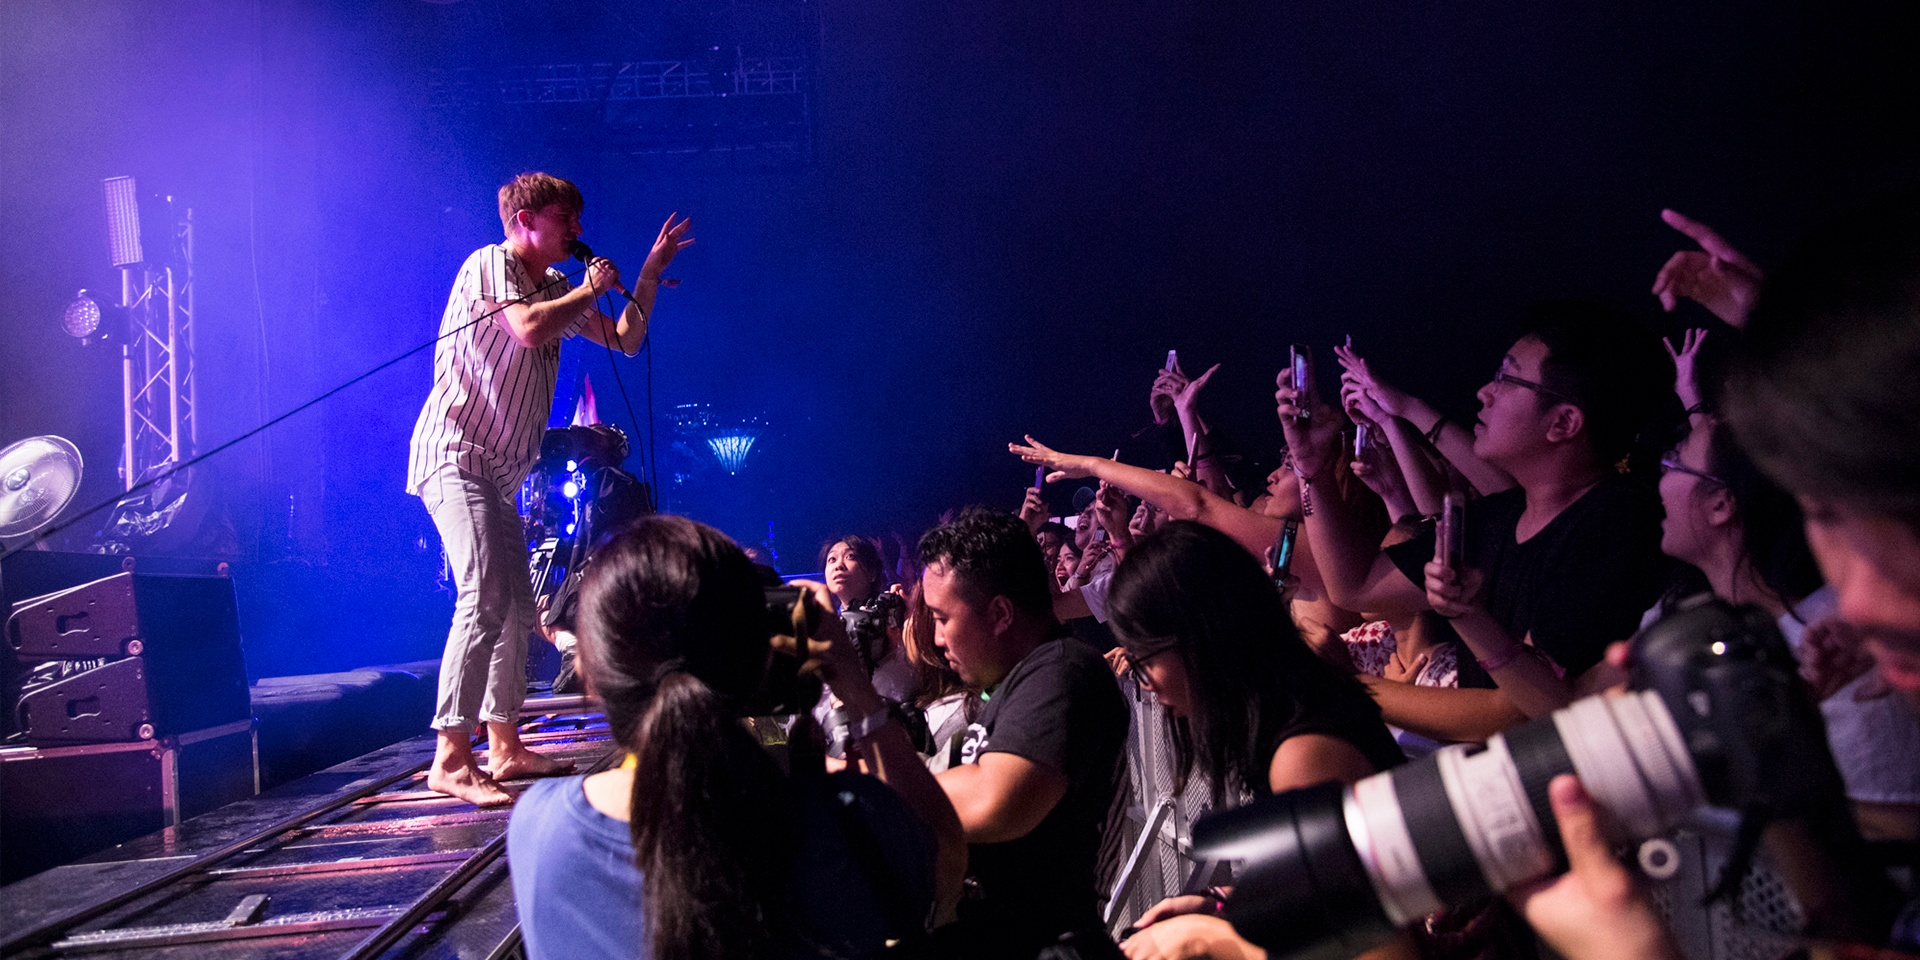 The highs and lows of Laneway Festival Singapore 2017